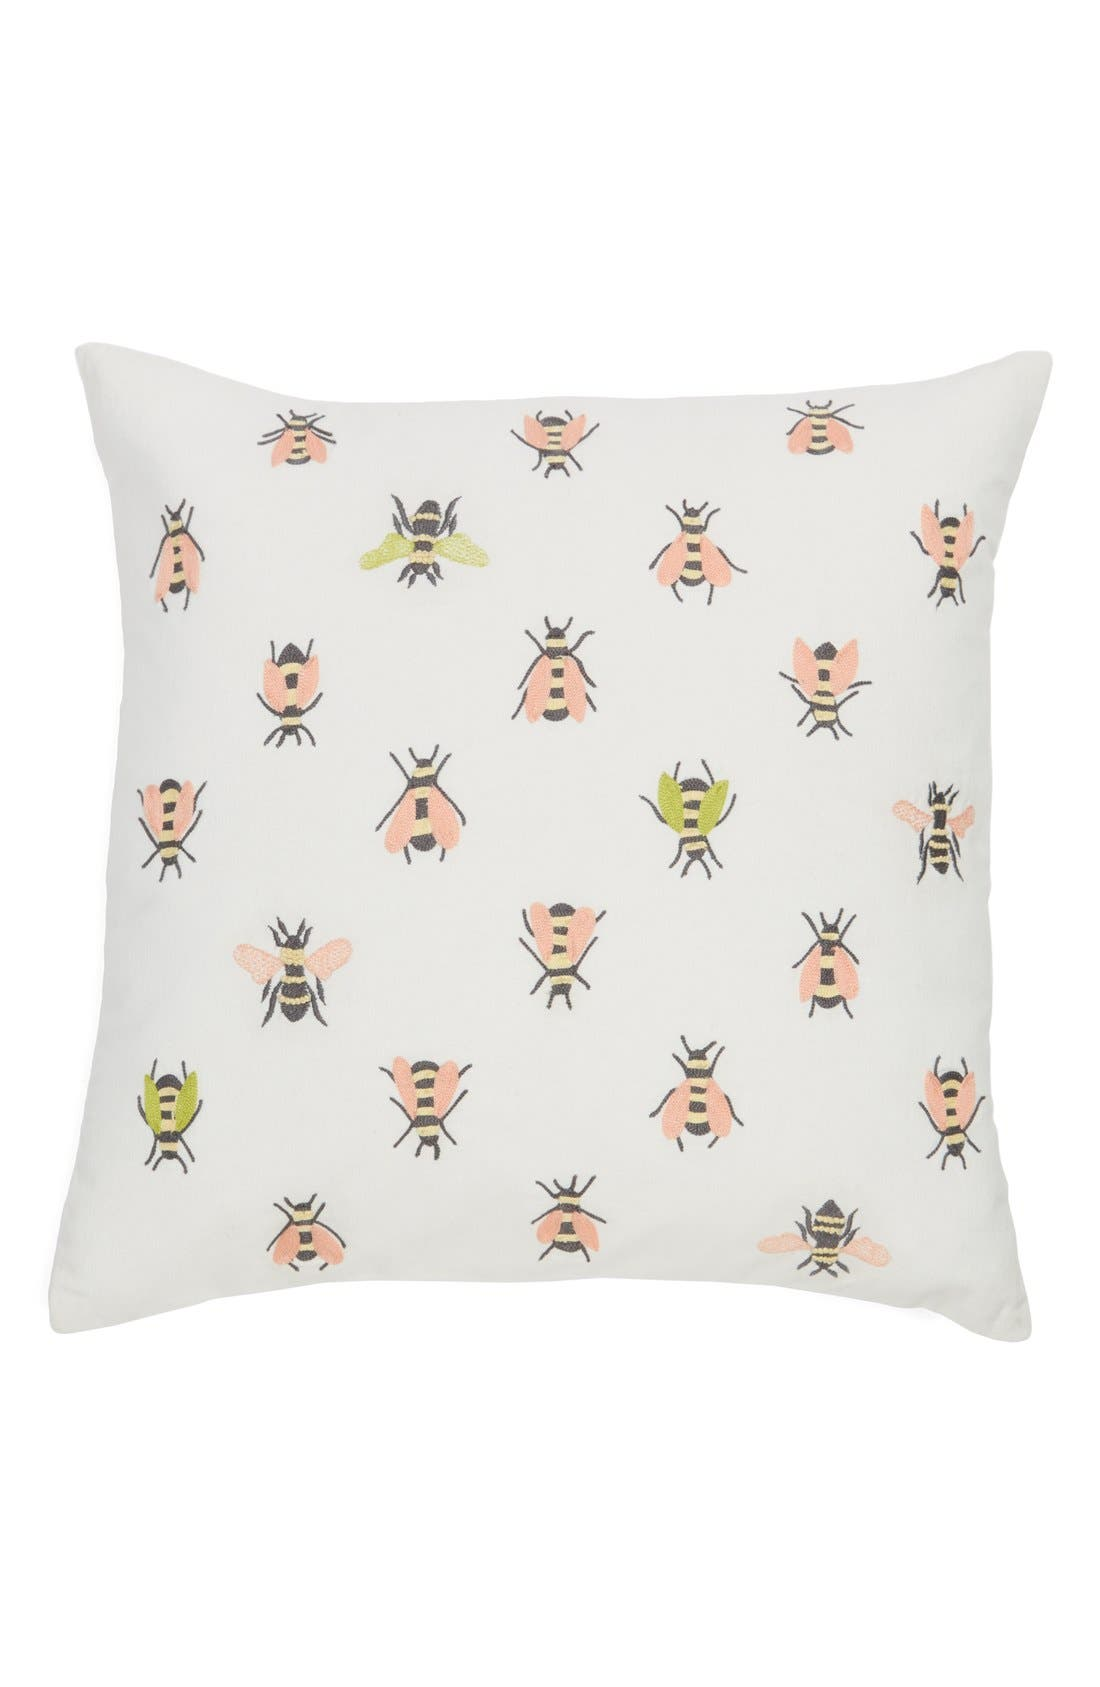 Alternate Image 1 Selected - Nordstrom at Home 'Bumble' Pillow